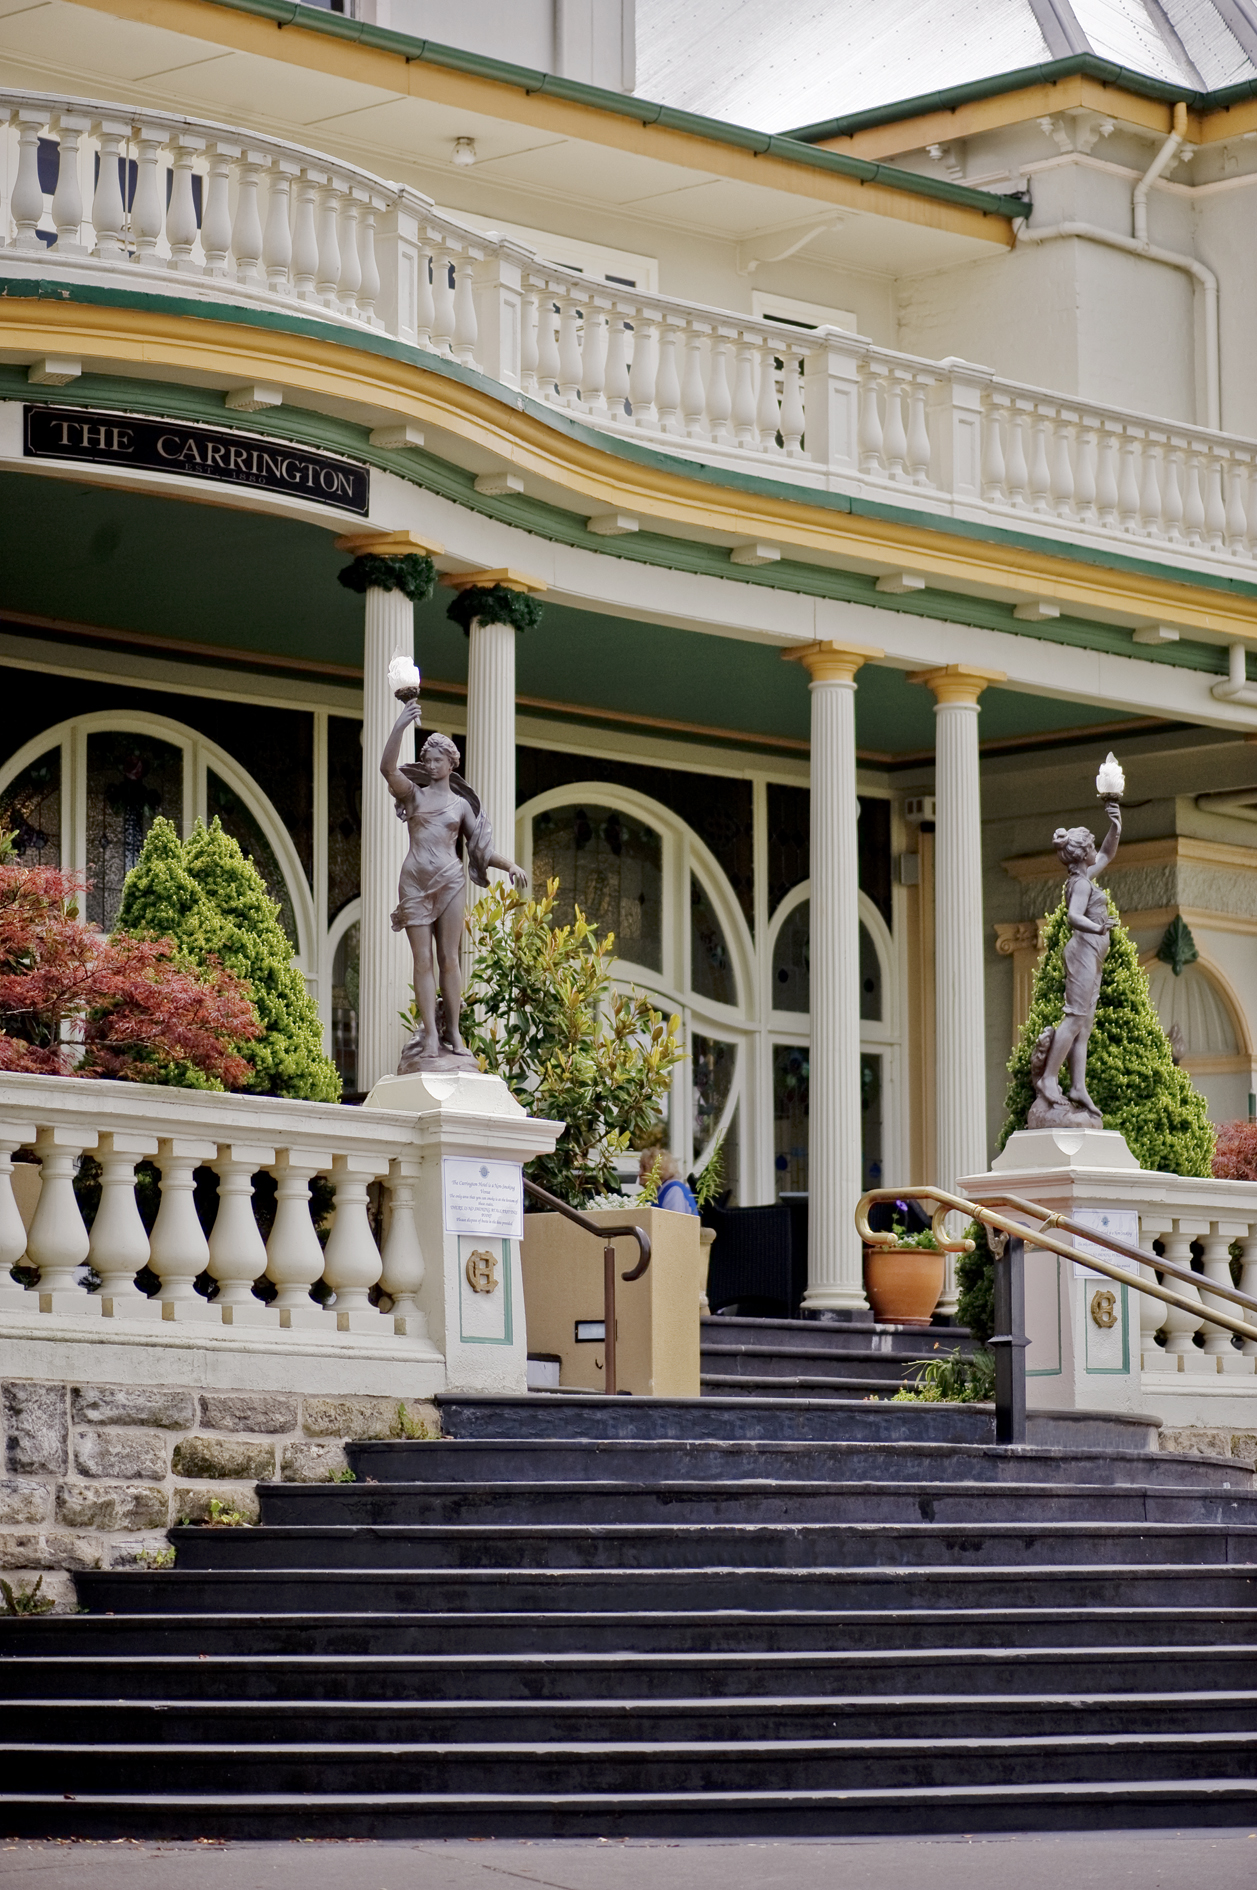 Carrington hotel visit blue mountains page 2 for The carrington